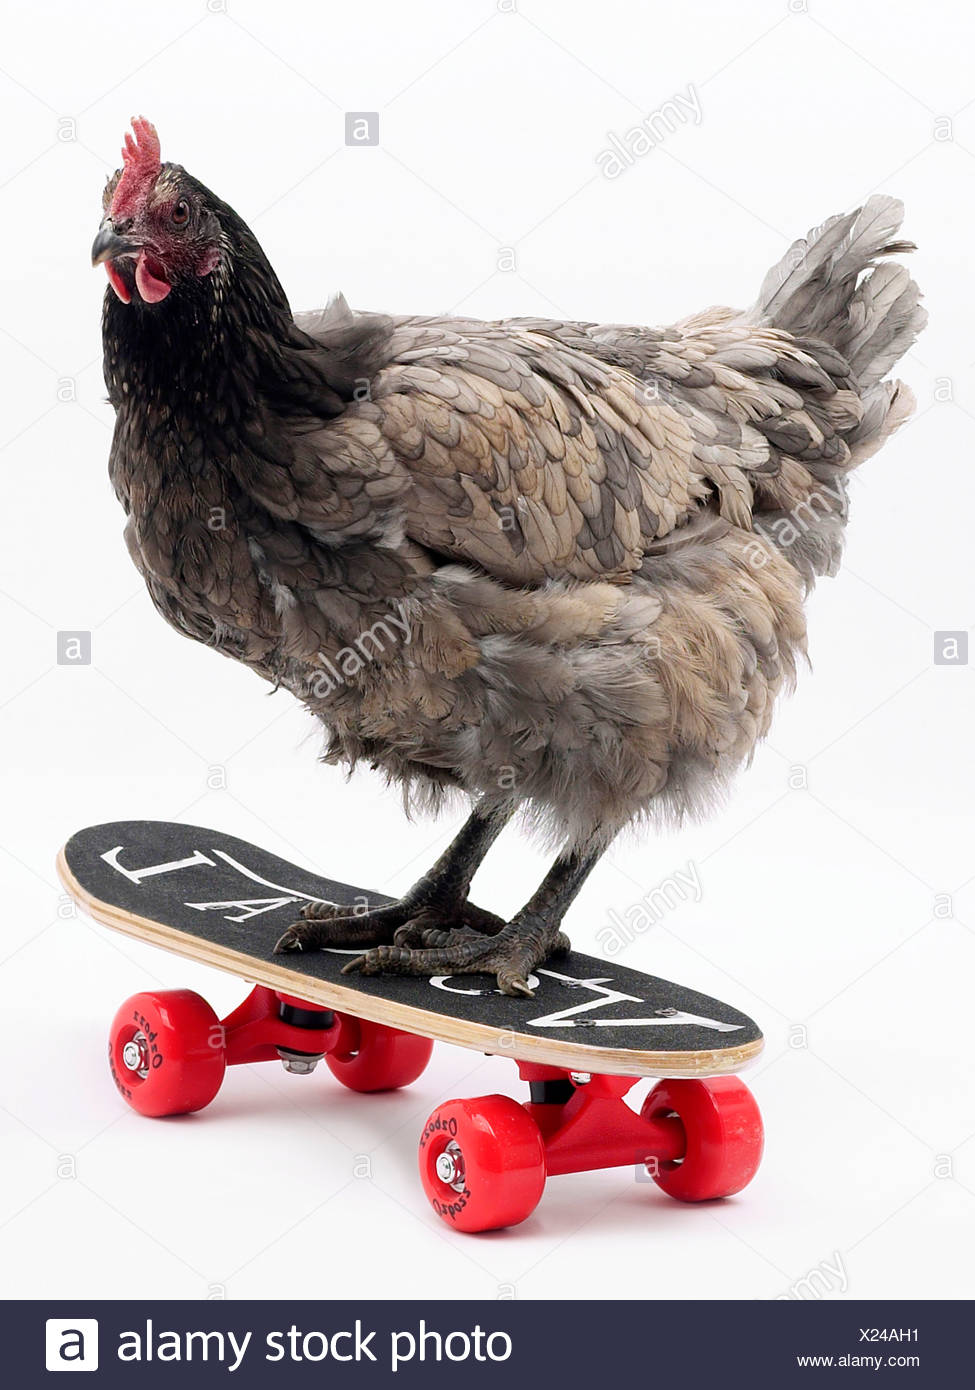 Chicken on a skateboard  poultry in motion. - Stock Image